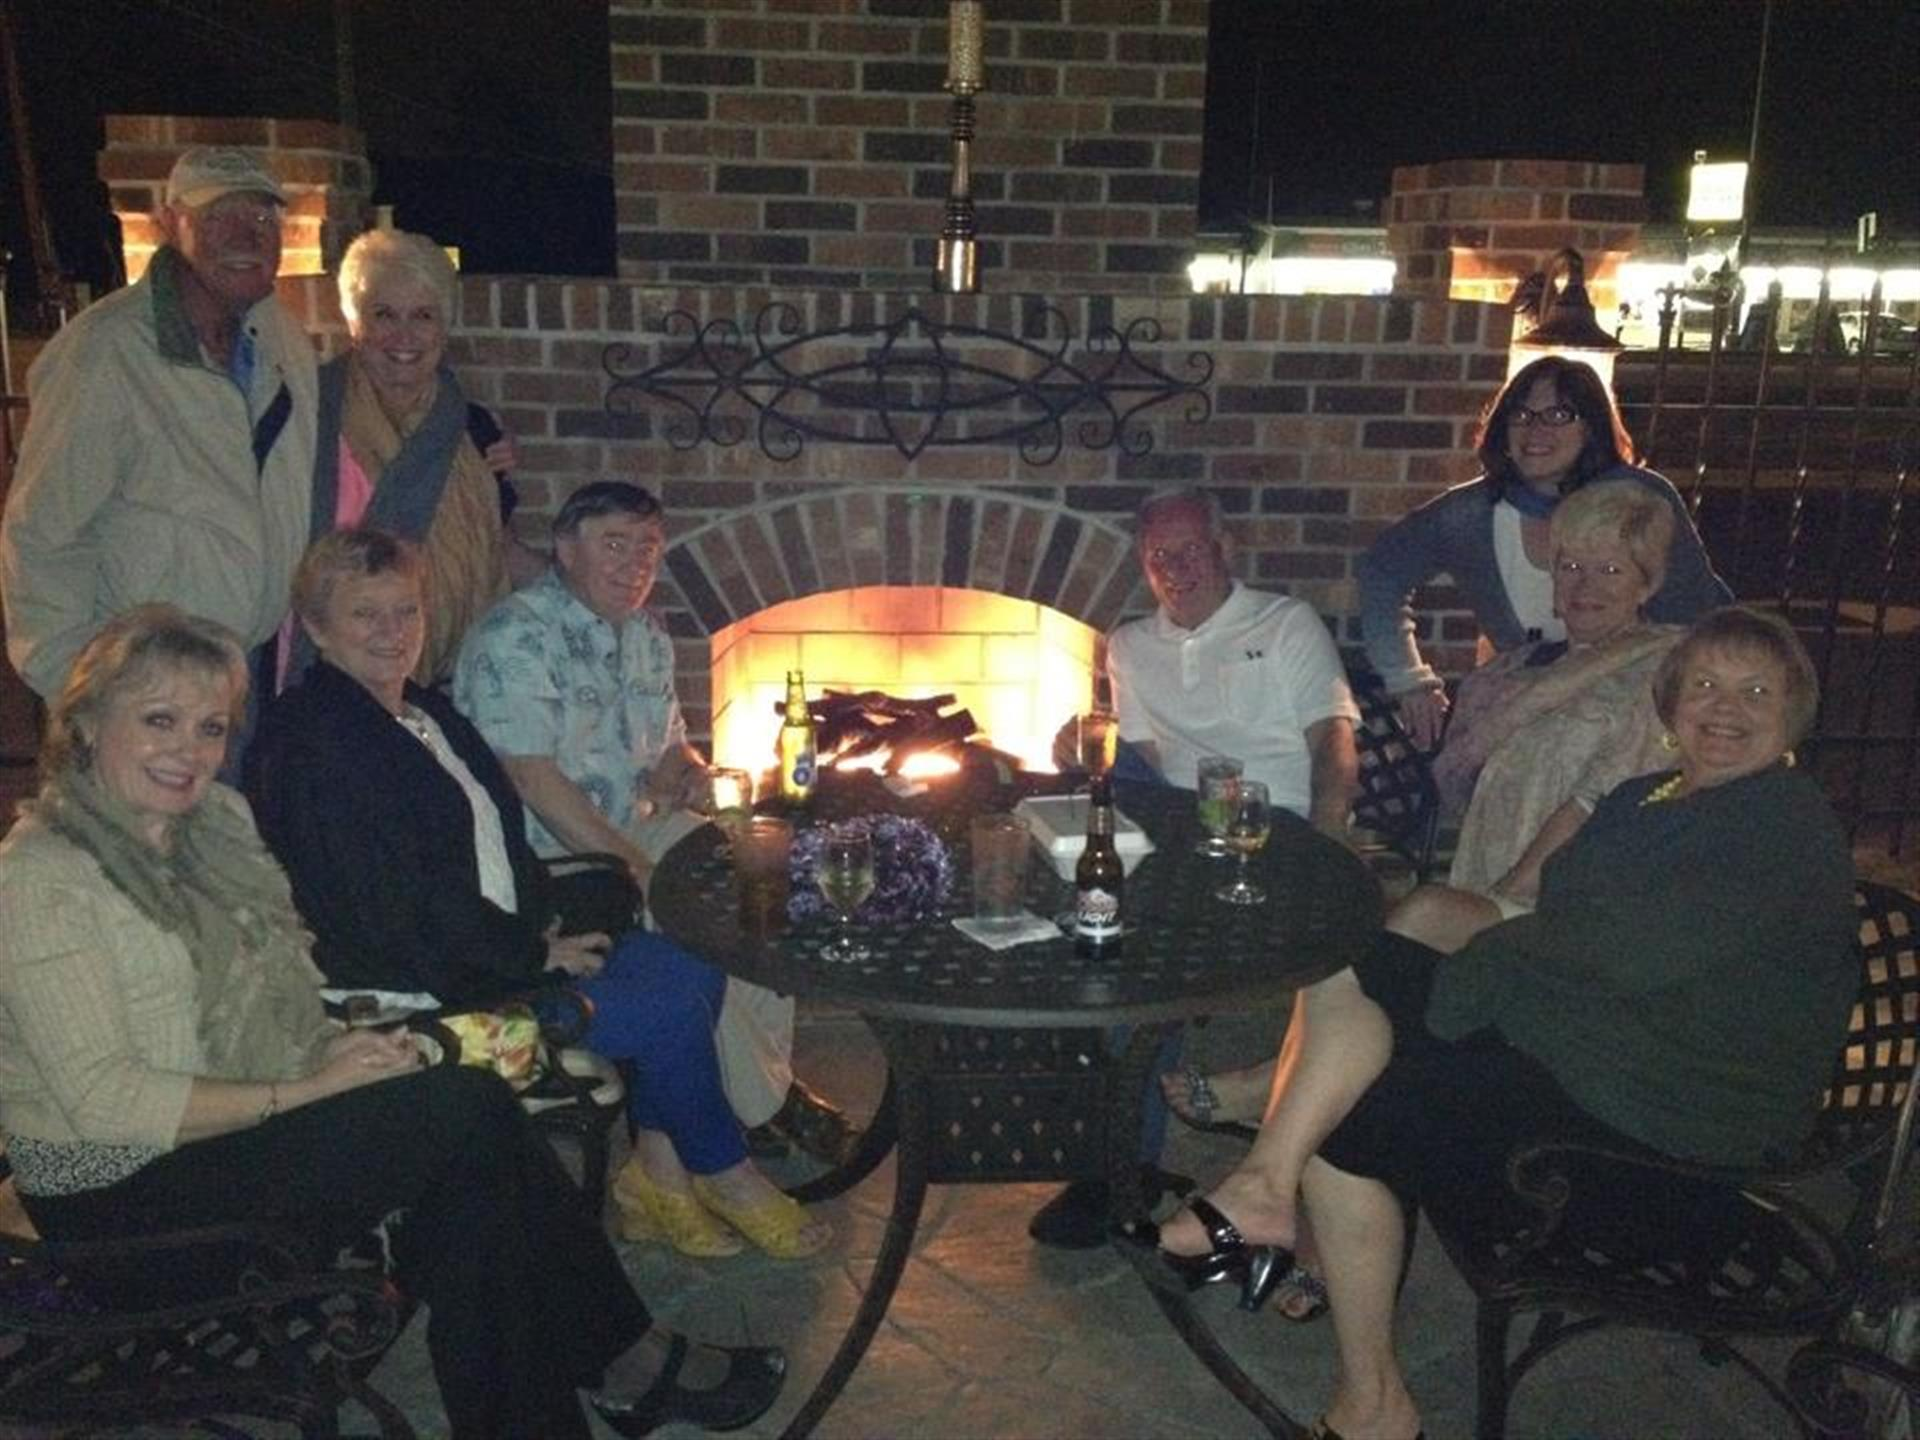 Adults gathering around outdoor table in front of fireplace